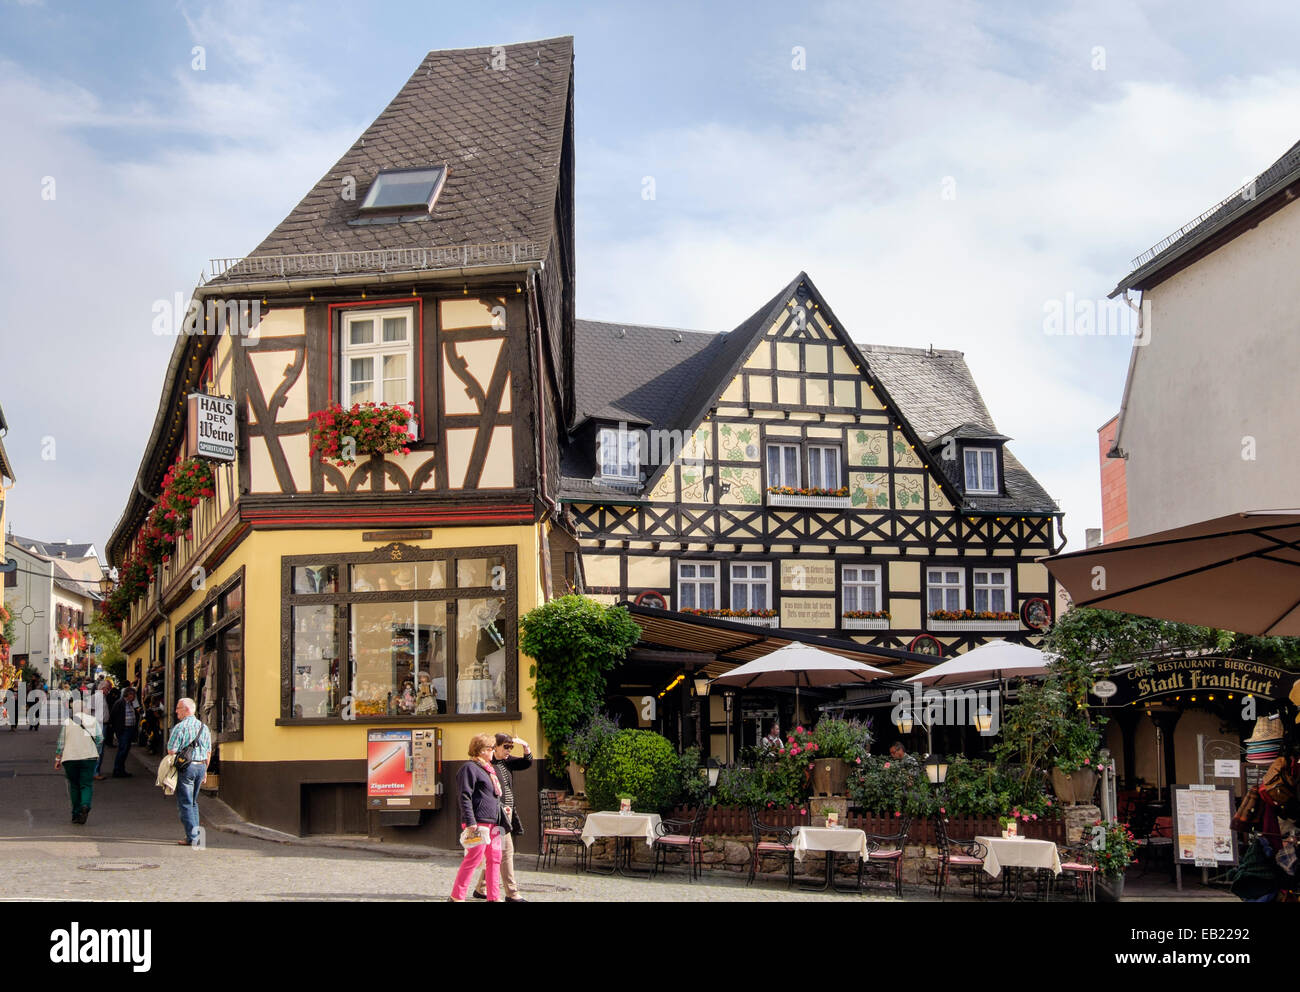 Timbered 17th and 18th century buildings and Stadt Frankfurt cafe restaurant in historic old town of Rüdesheim - Stock Image